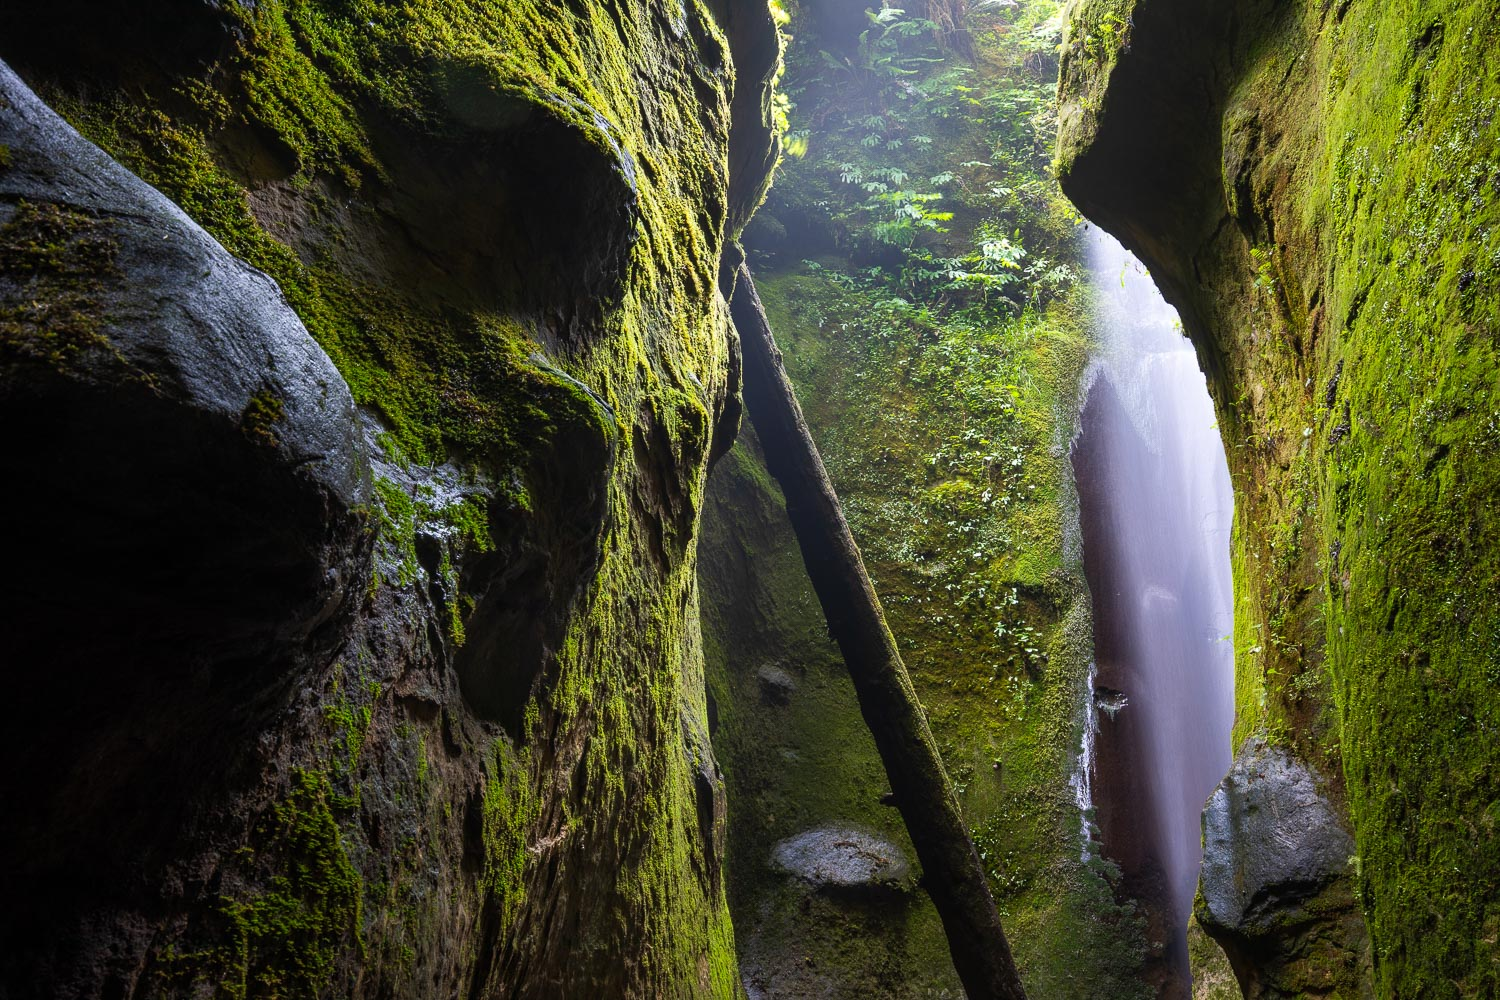 The hidden sandstone canyon and waterfall at Sombrio Beach is a truly magical place. I never tire of coming here as it always looks a little different depending on the time of day and the season. Aside from the picturesque waterfall, mosses, and ferns, there's an eye-catching blend of natural curves and lines well.